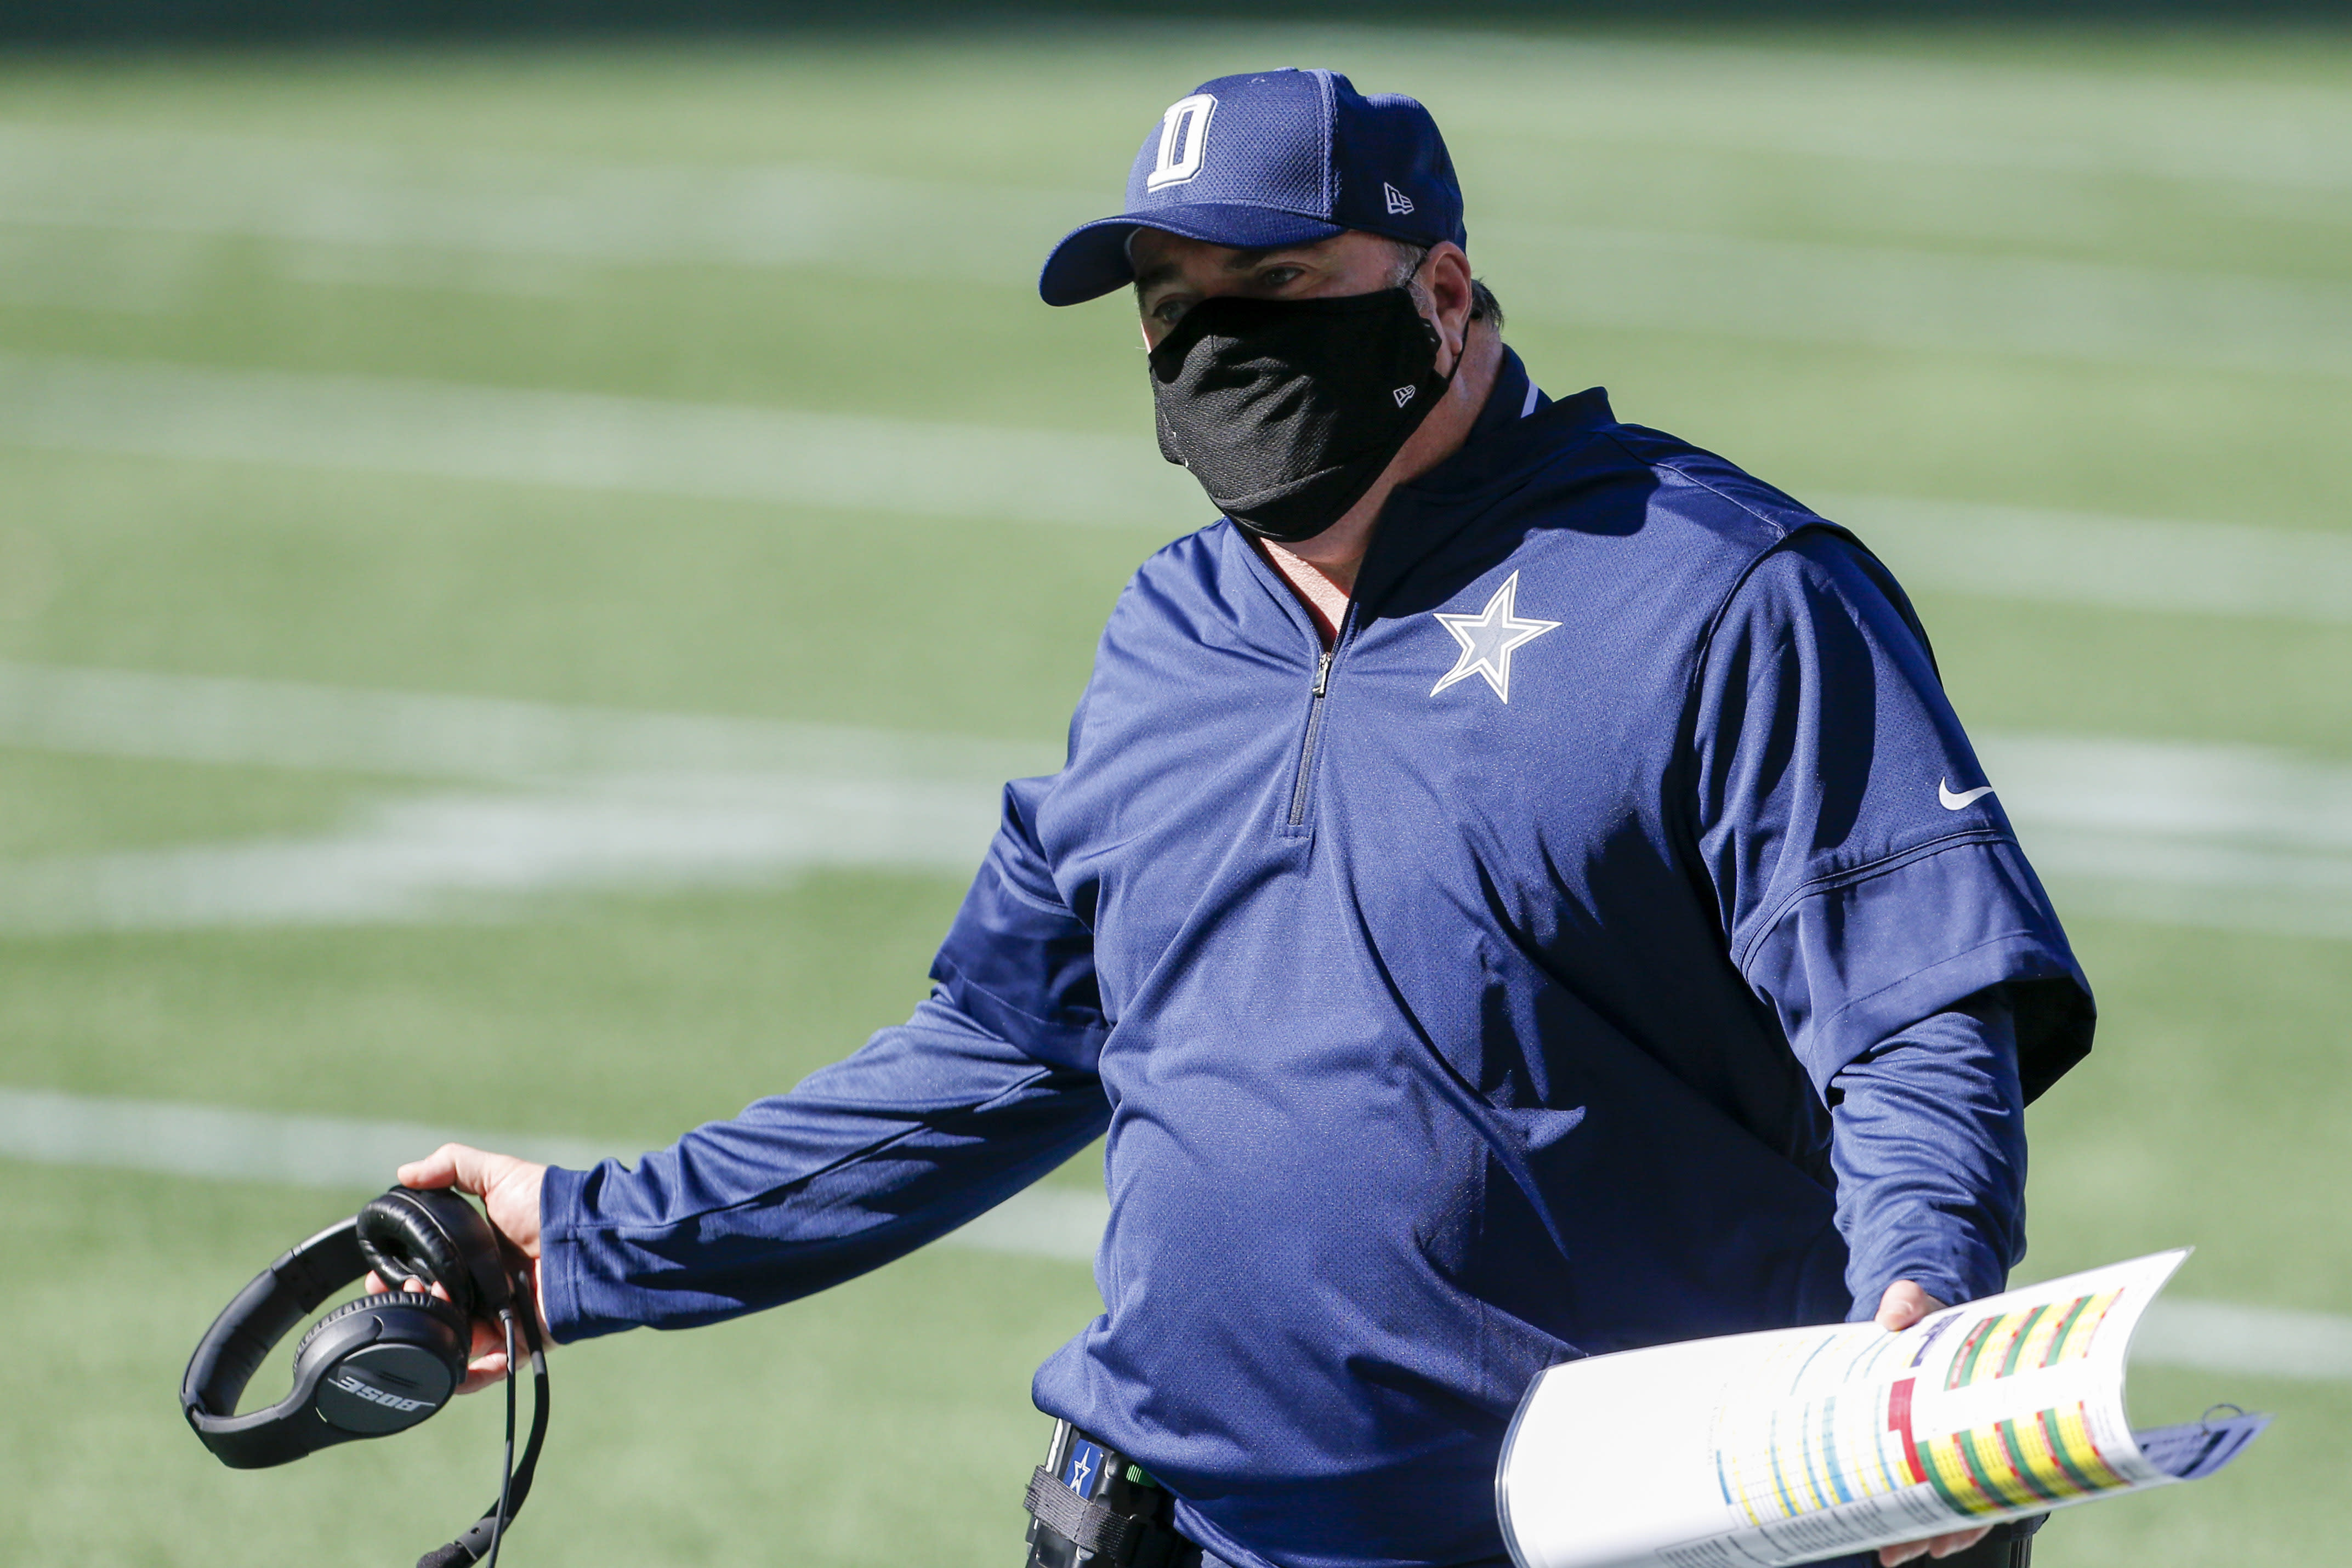 The Cowboys' toughness and togetherness are under siege, and the fix falls squarely on Mike McCarthy